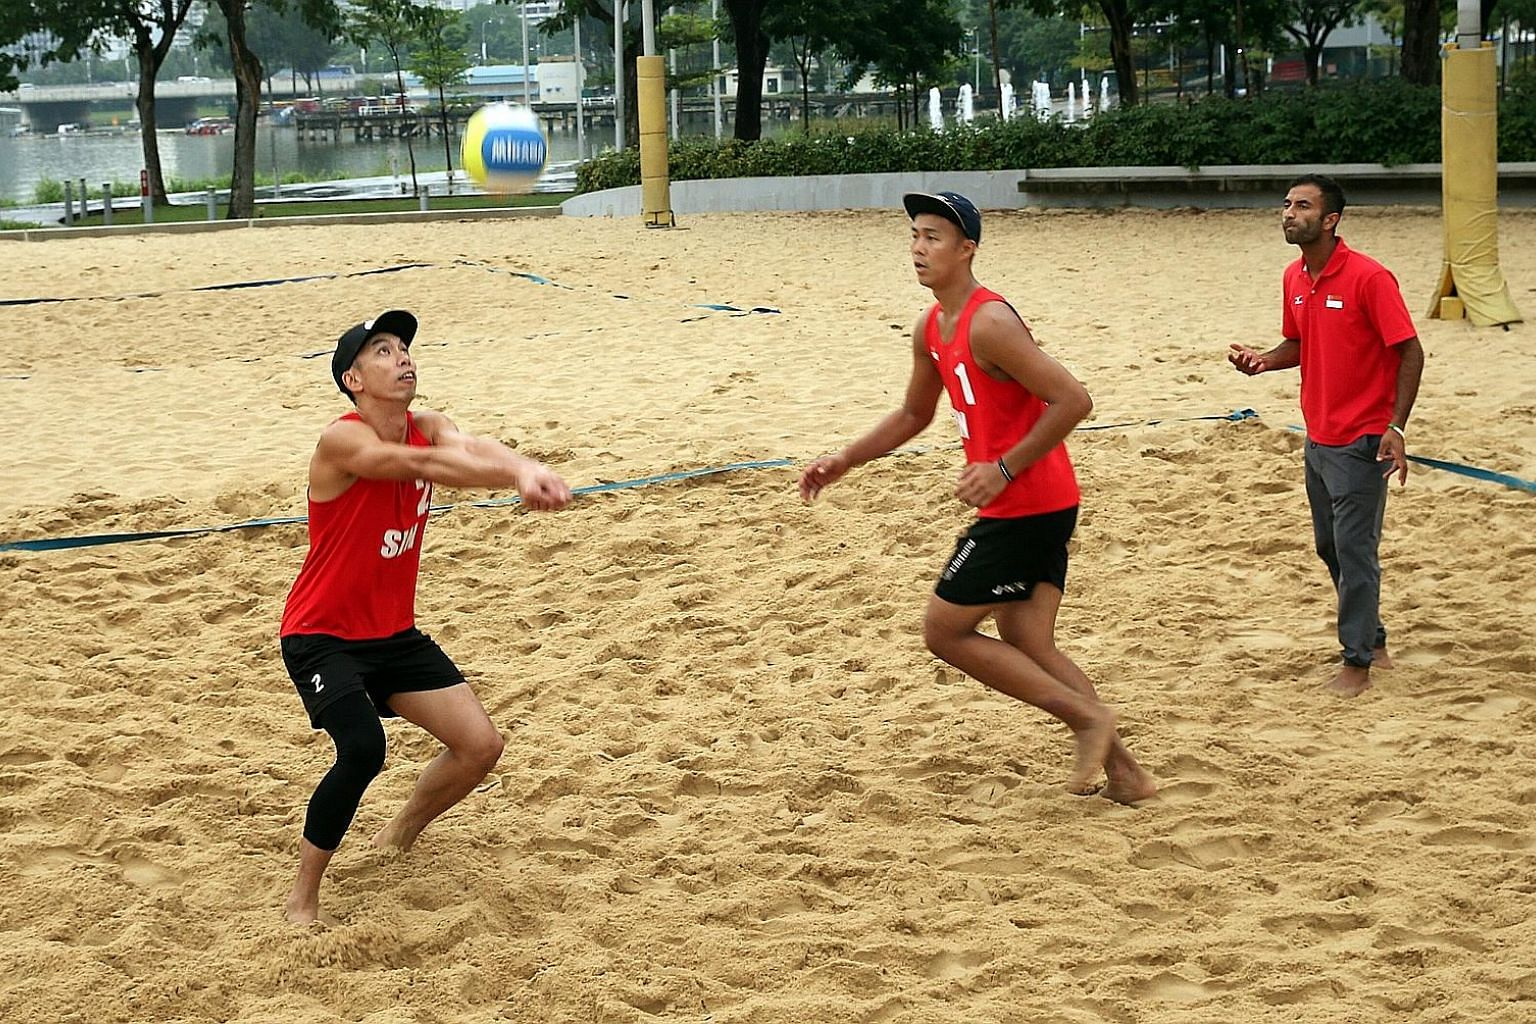 Gilbert Tan setting the ball for Zhuo Hong Chuan in training, as national beach volleyball coach Dean Martin instructs them. The Canadian has targeted a top-six placing in Asia for Singapore to stand a chance of competing in both the Asian and Common